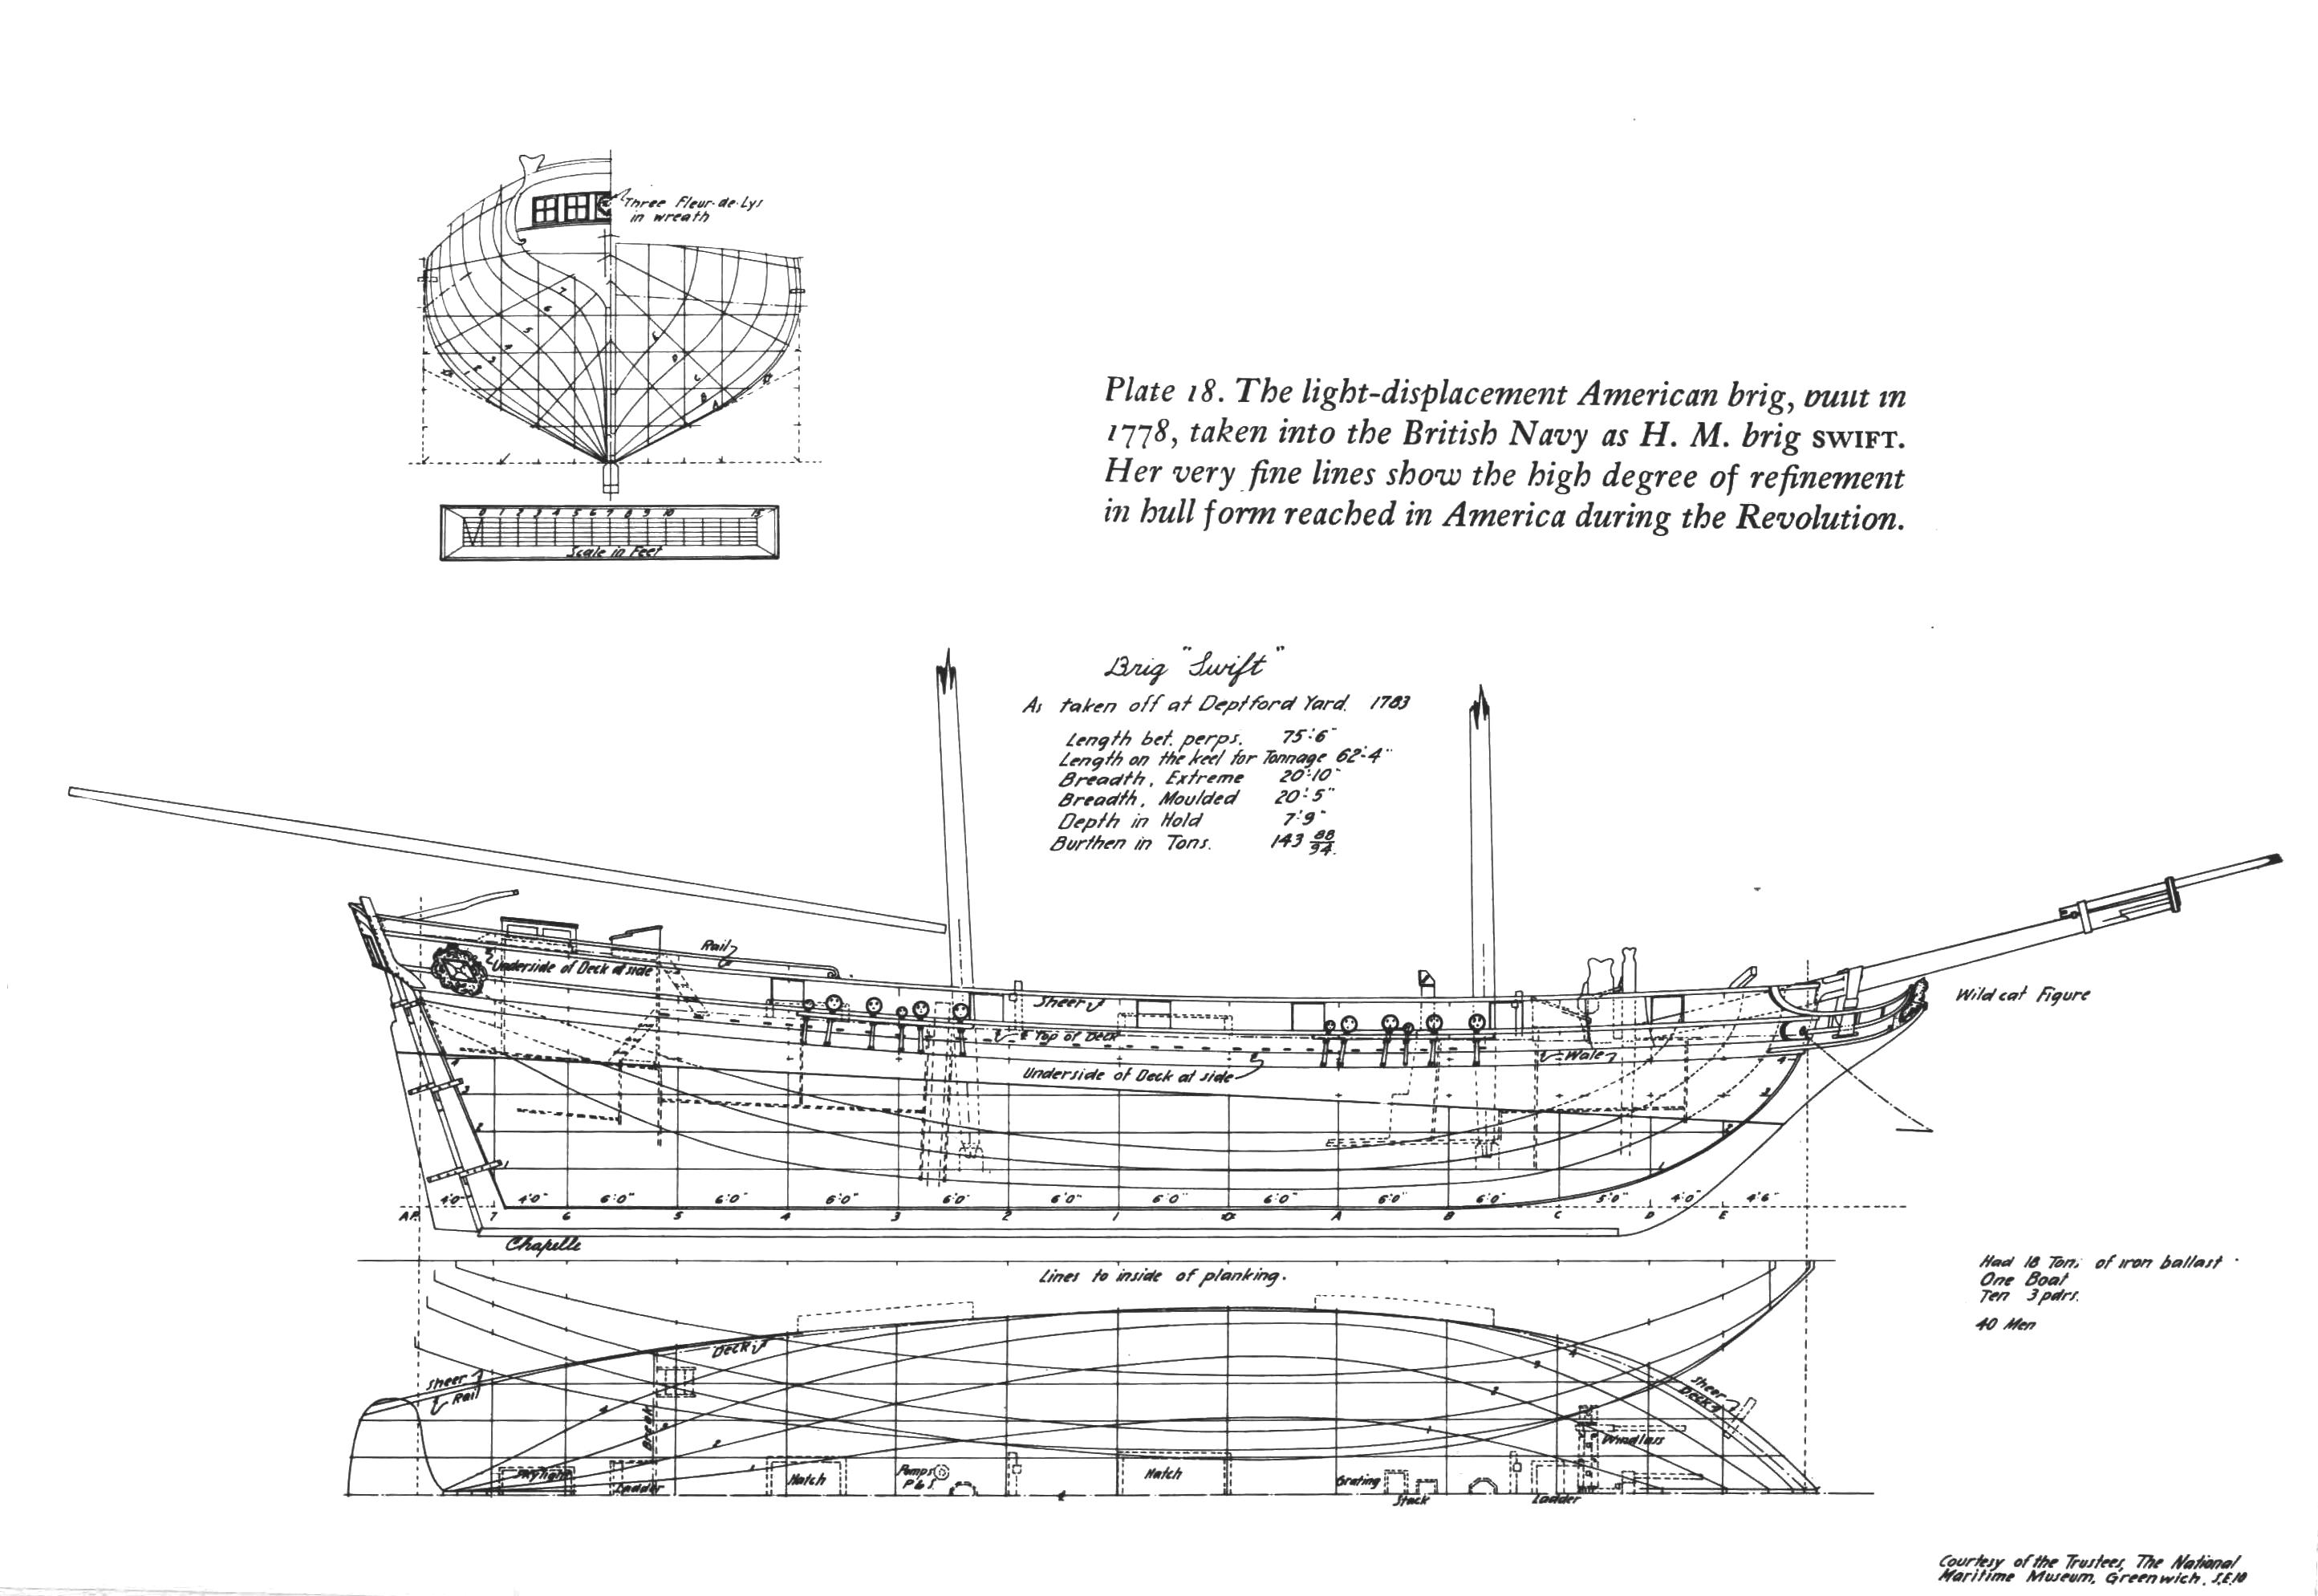 The search for speed under sail 1700-1855_ - 0126.jpg